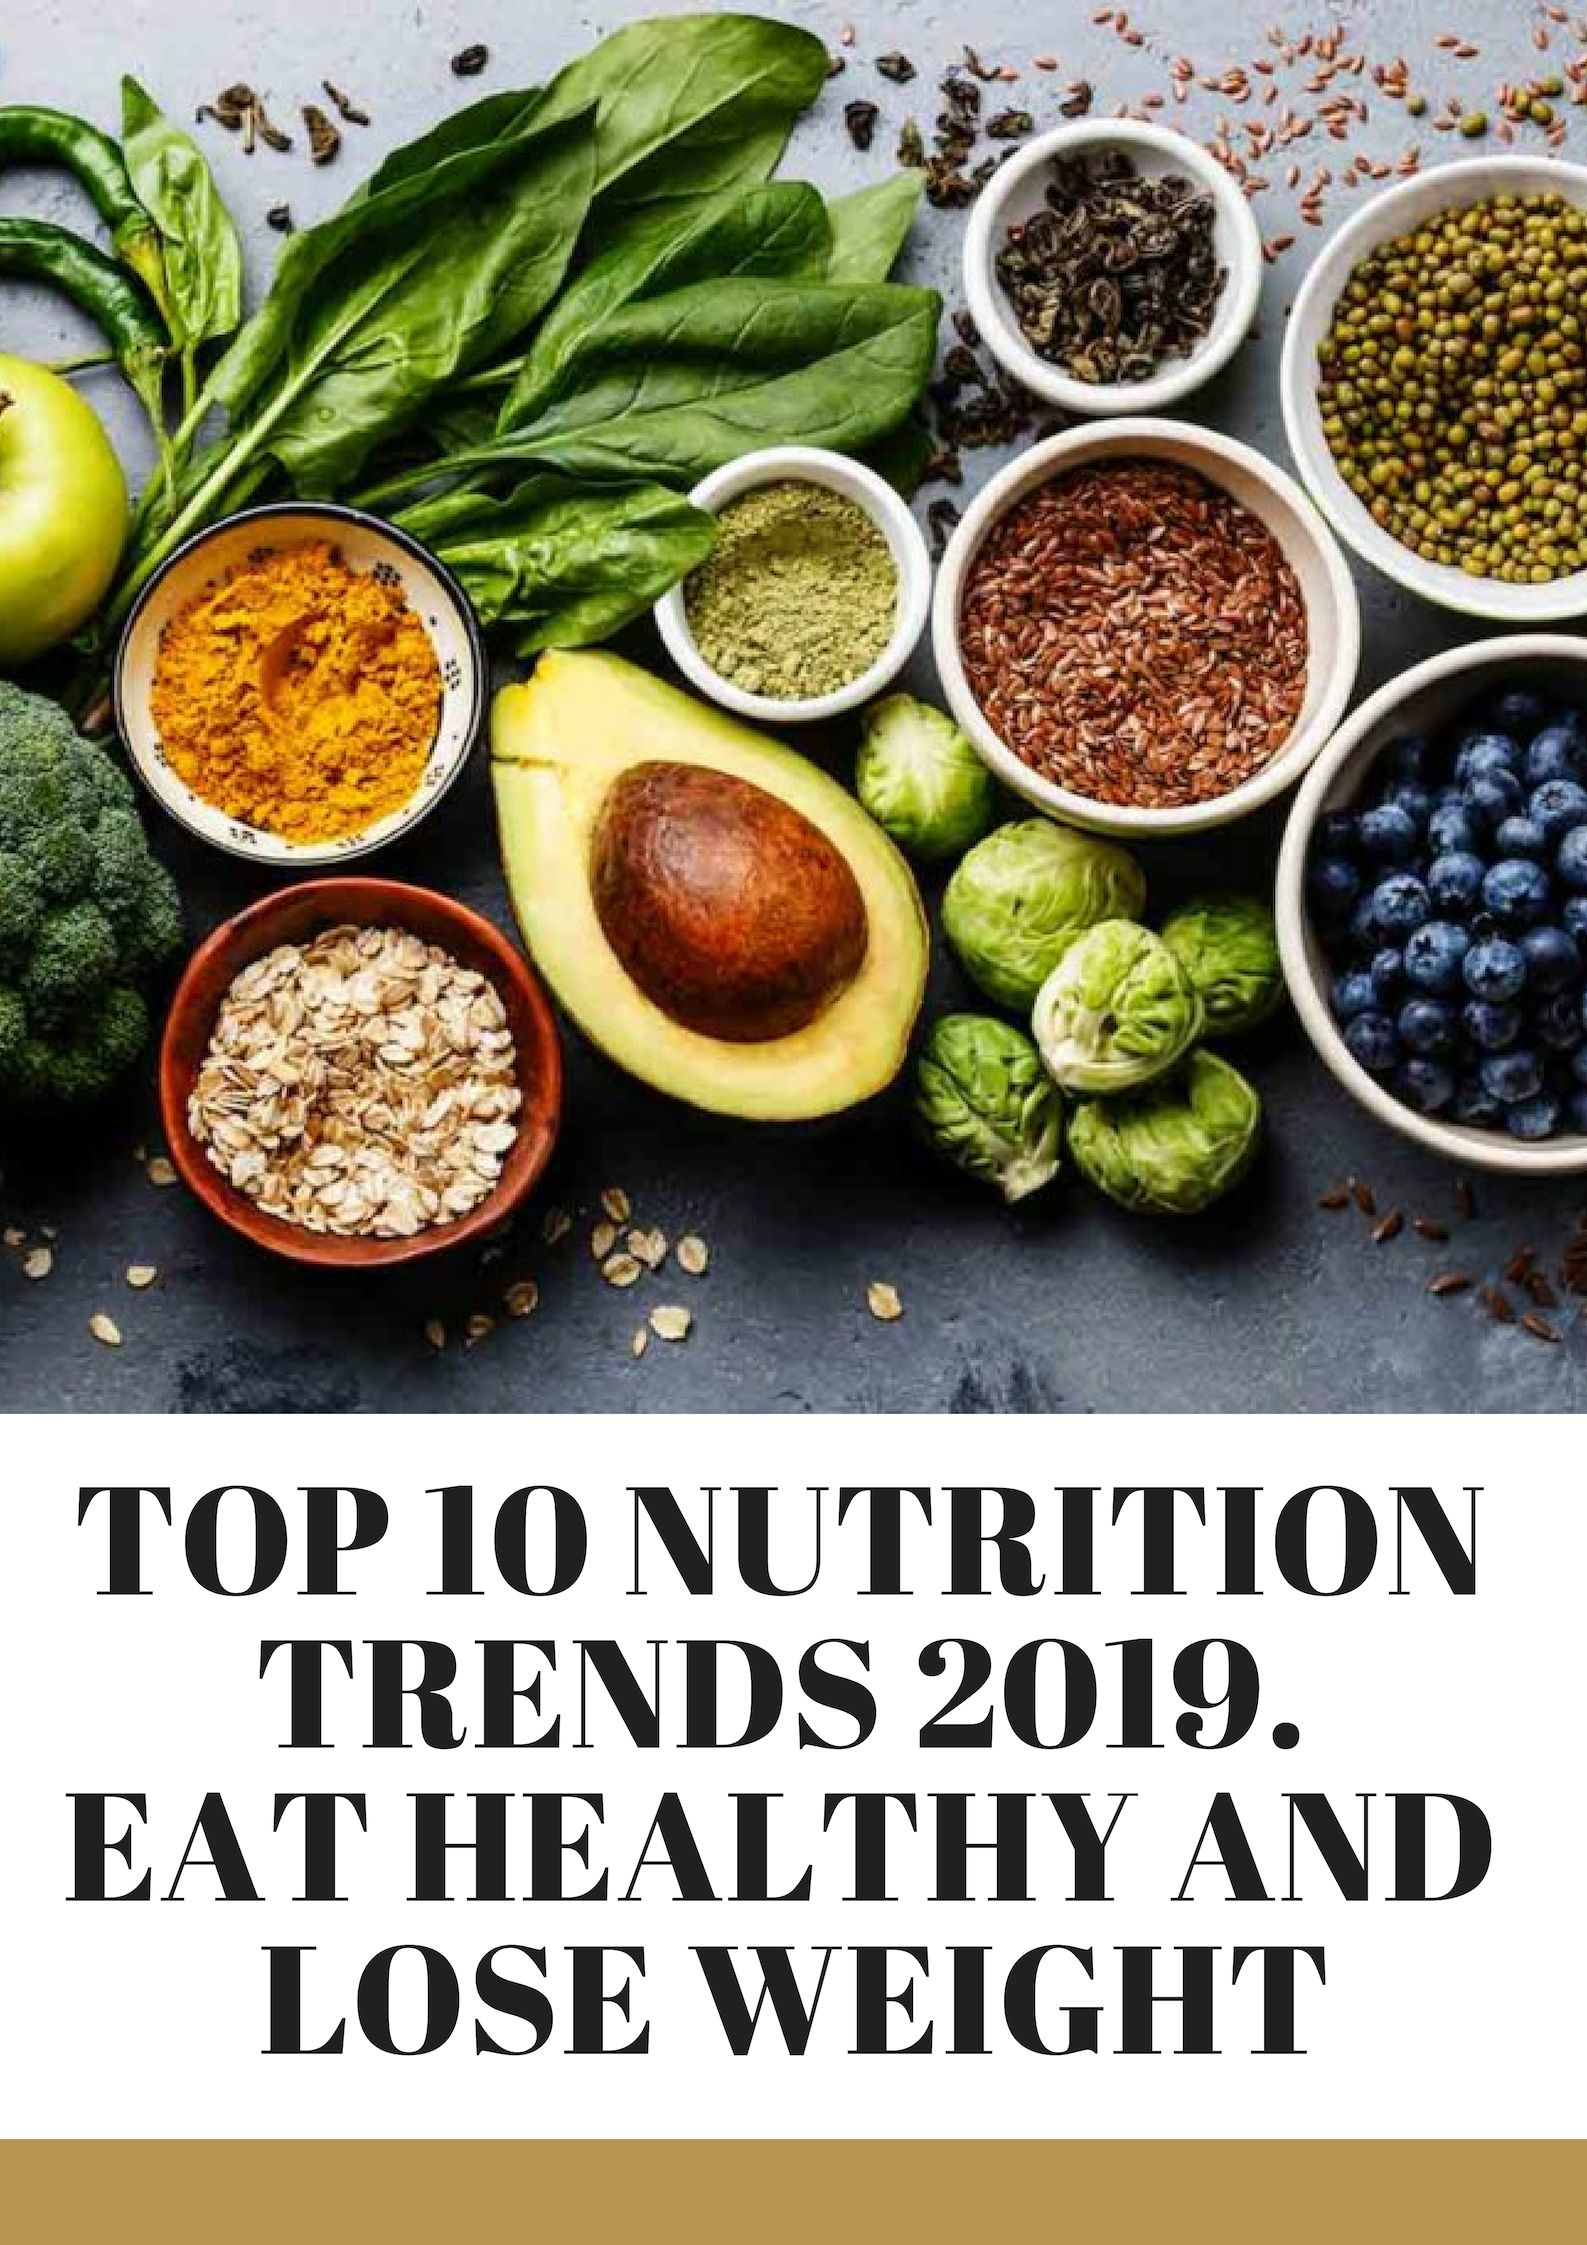 Pin On Healthy Nutrition Facts Eating Plan On A Budget